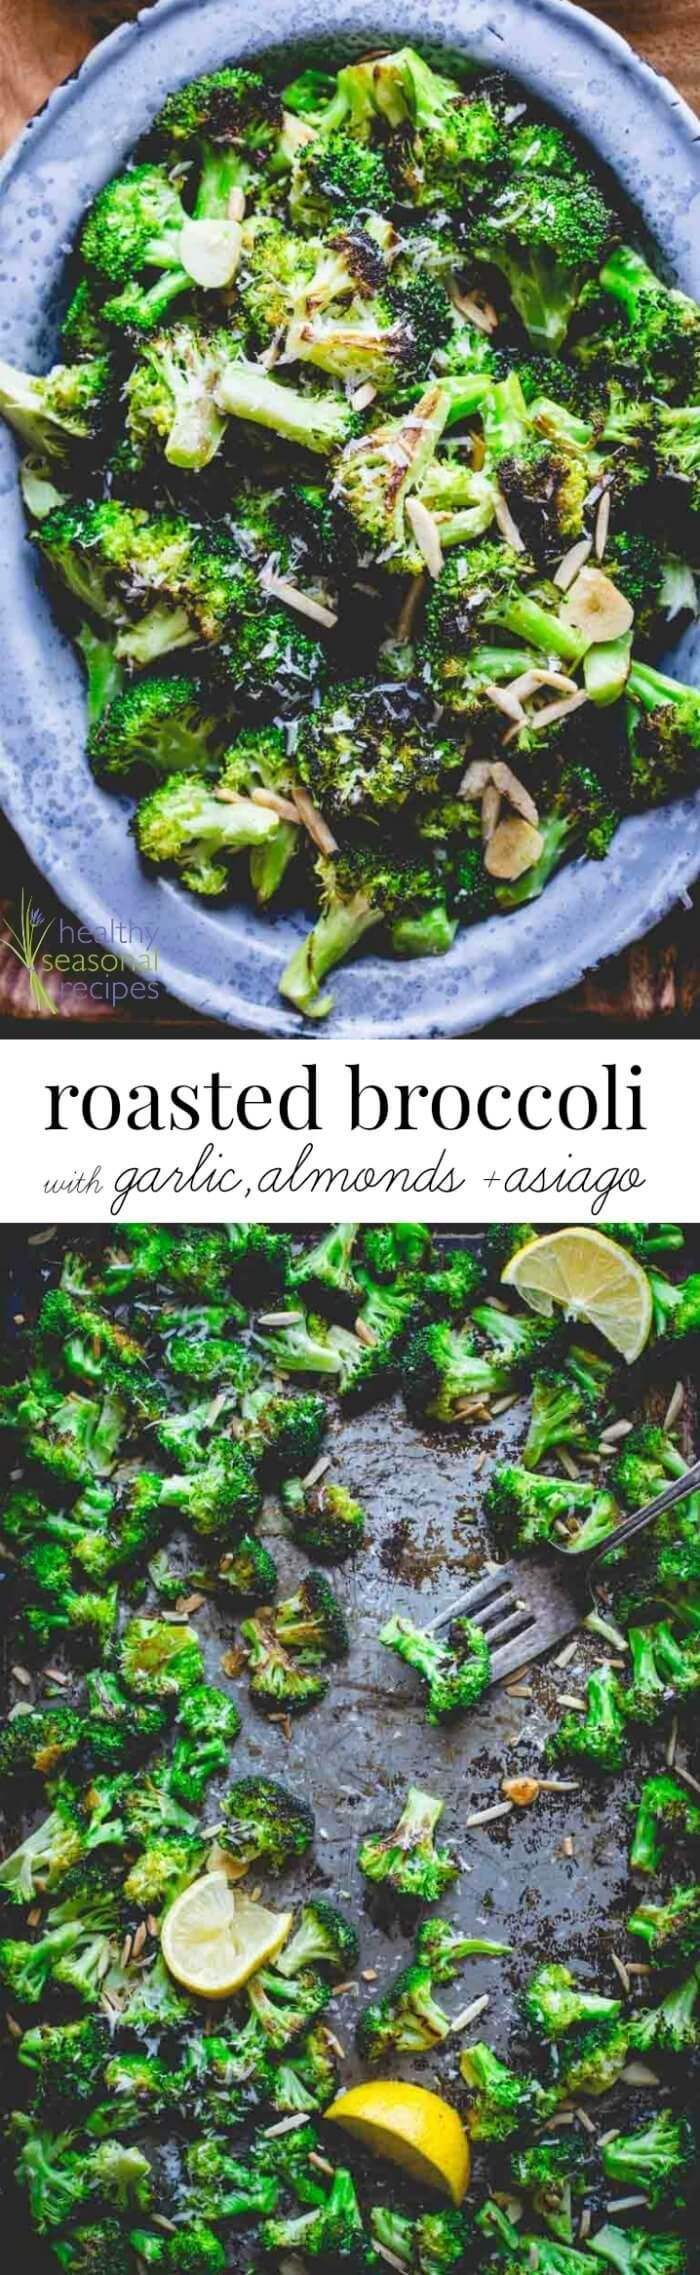 Blog post at Healthy Seasonal Recipes : Do you roast your veggies? If not, then stop what you are doing right now and make this Roasted Broccoli with Asiago, Garlic and Almonds!! [..]